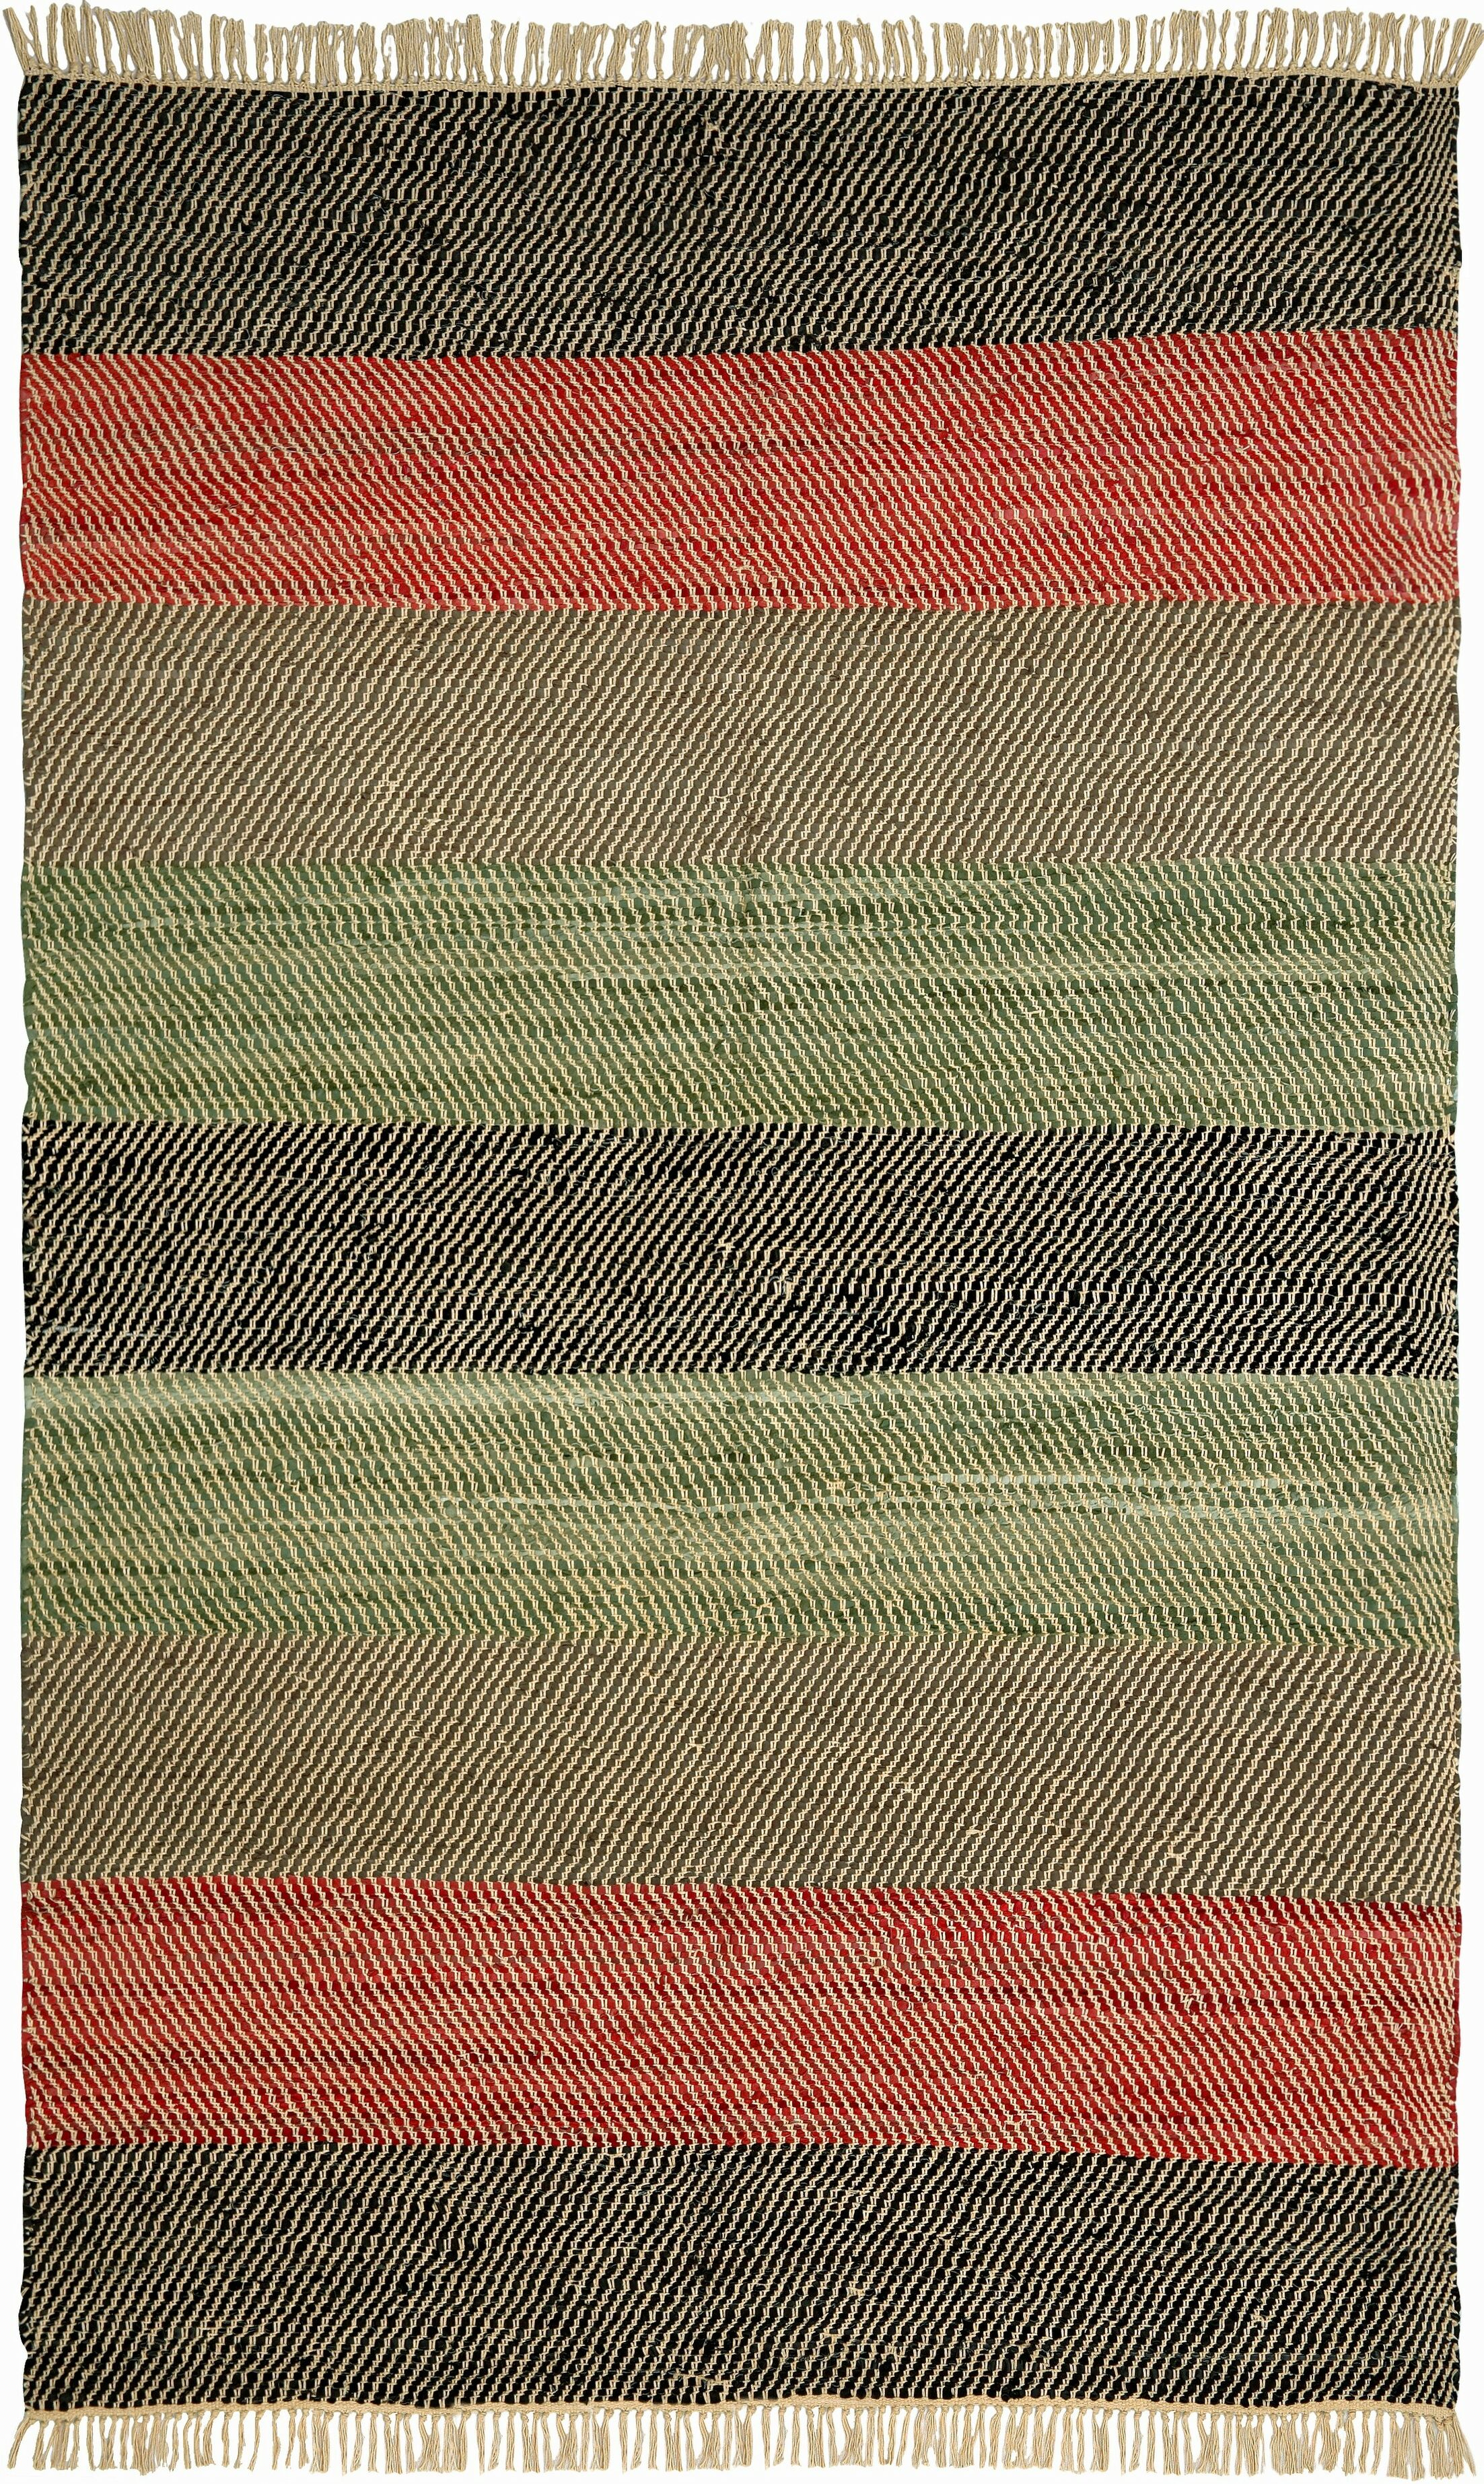 Matador Striped Leather Chindi Black Area Rug Rug Size: Runner 2'5